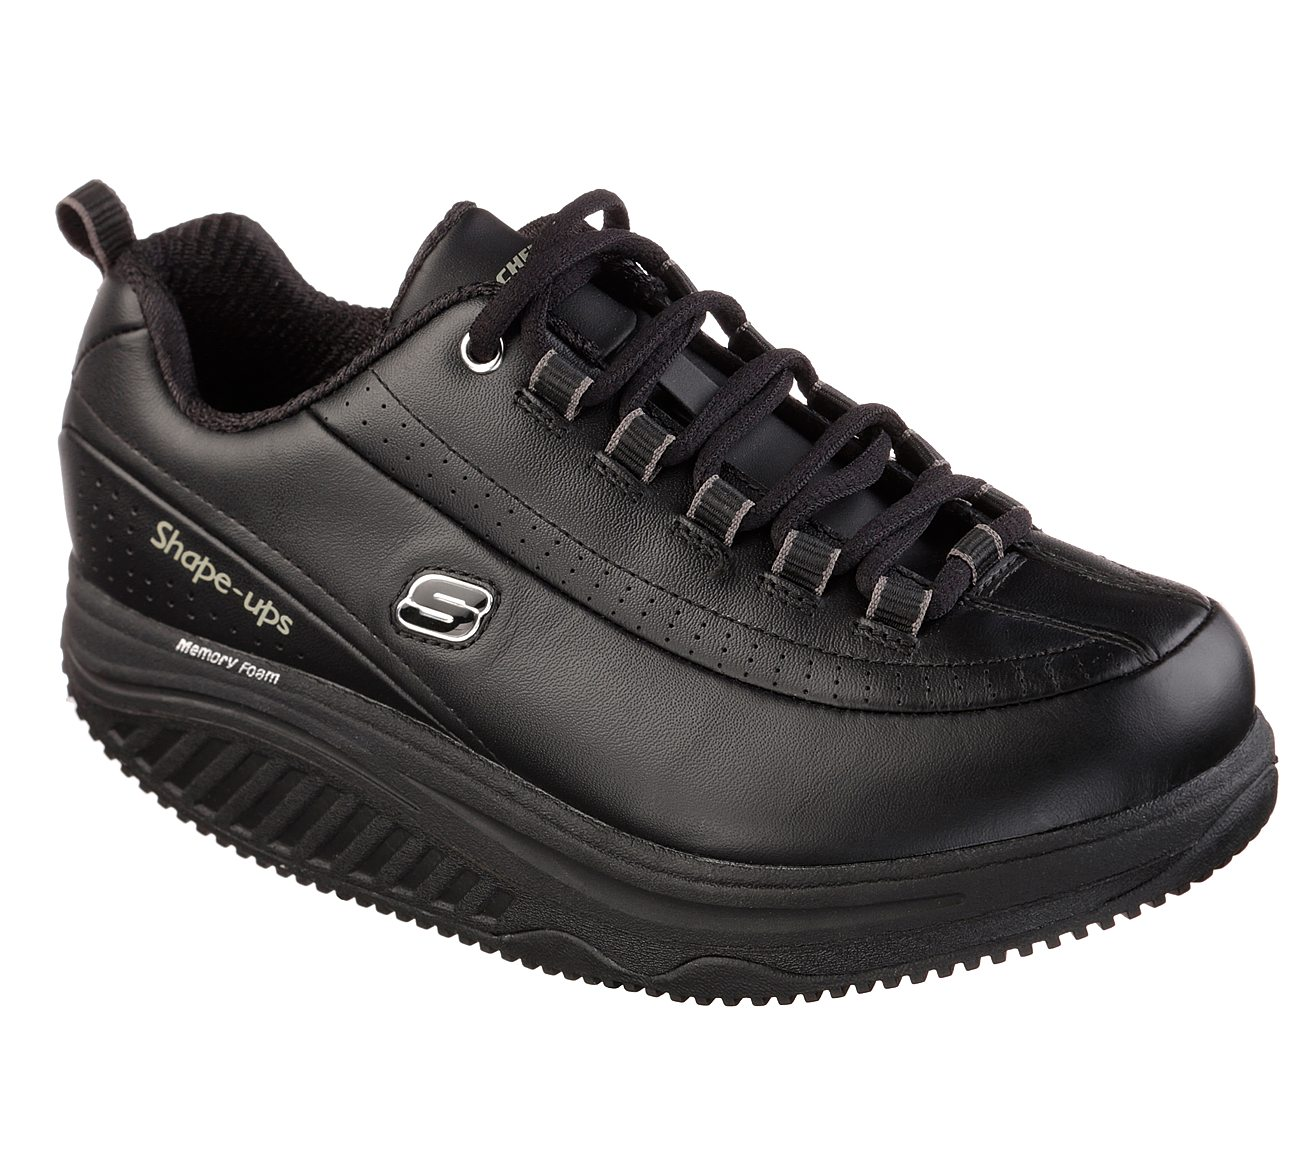 skechers ups shape